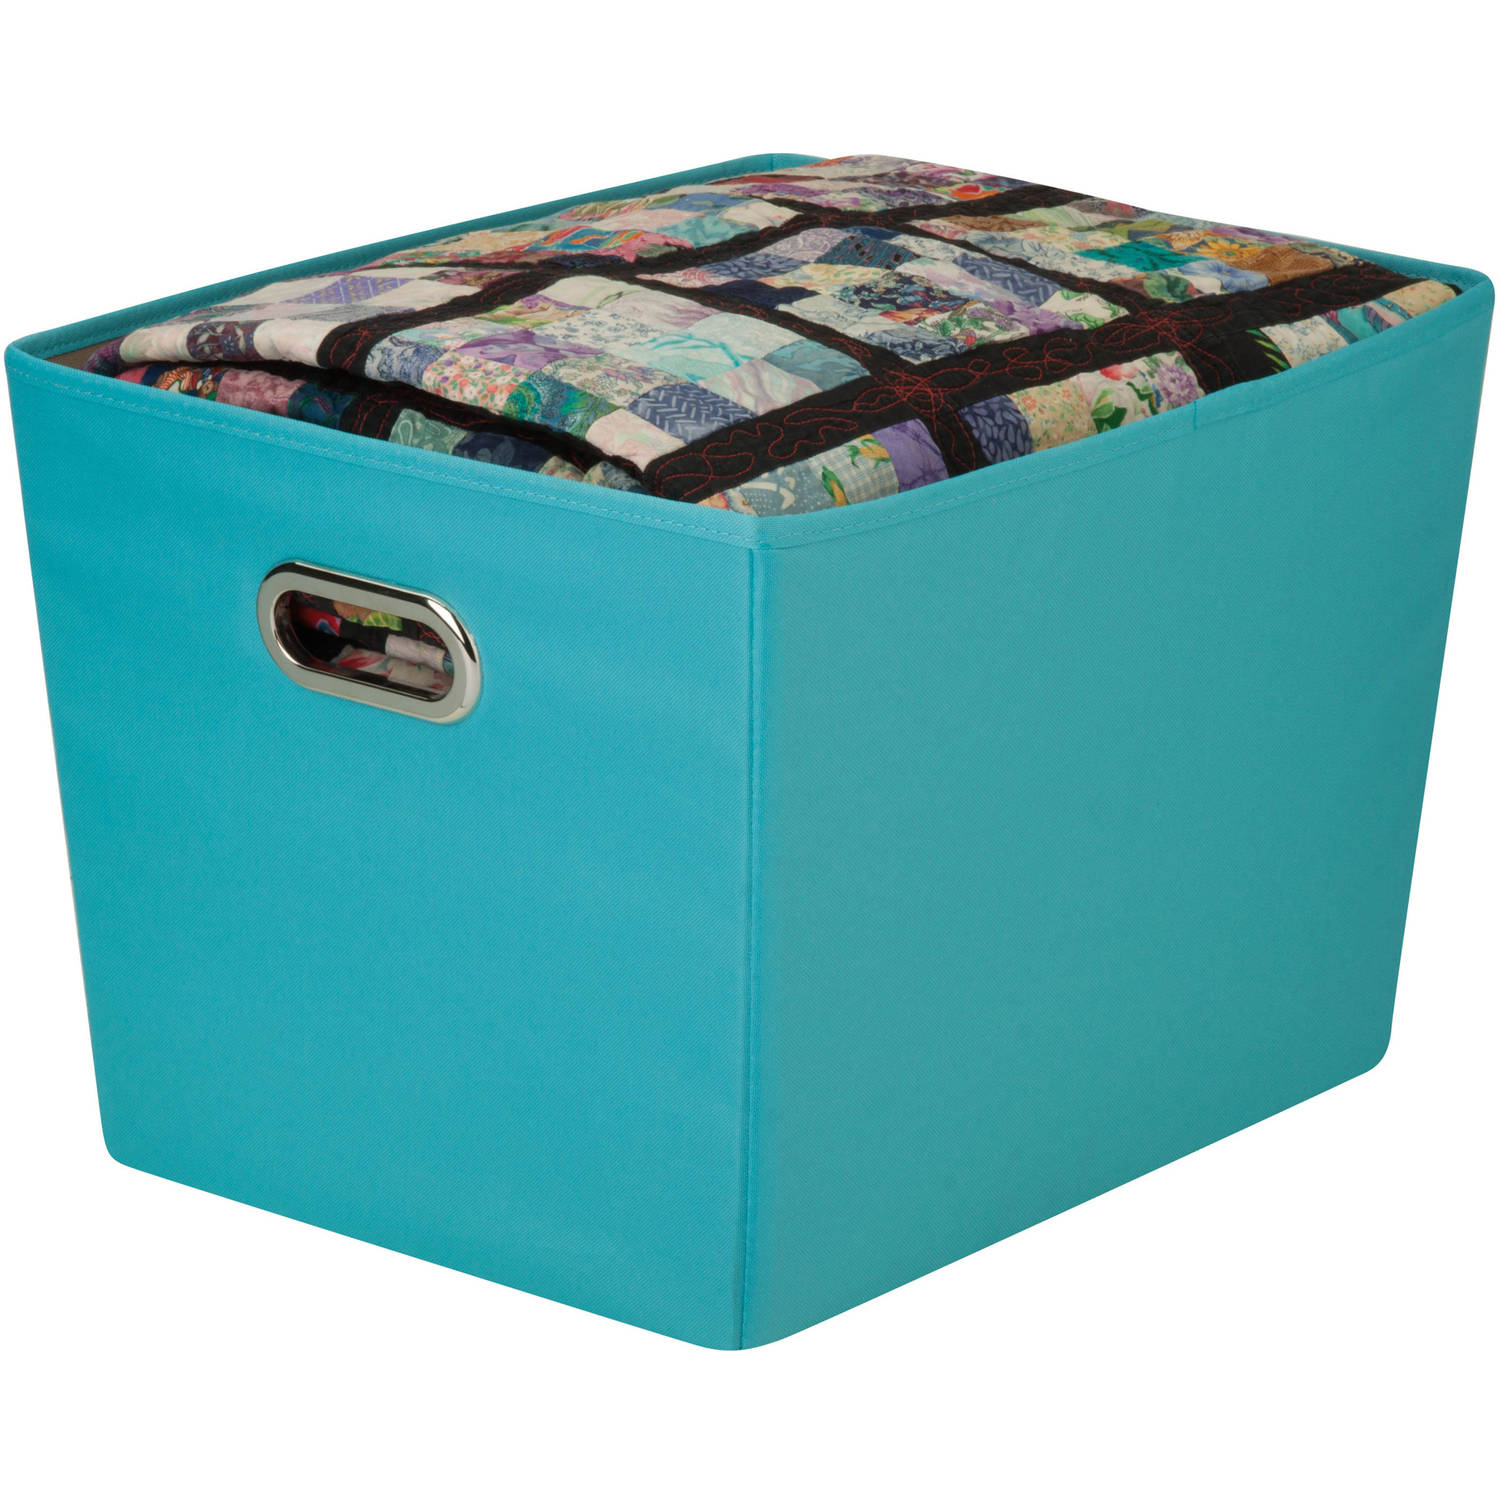 Honey Can Do Large Decorative Storage Bin With Handles, Multicolor    Walmart.com